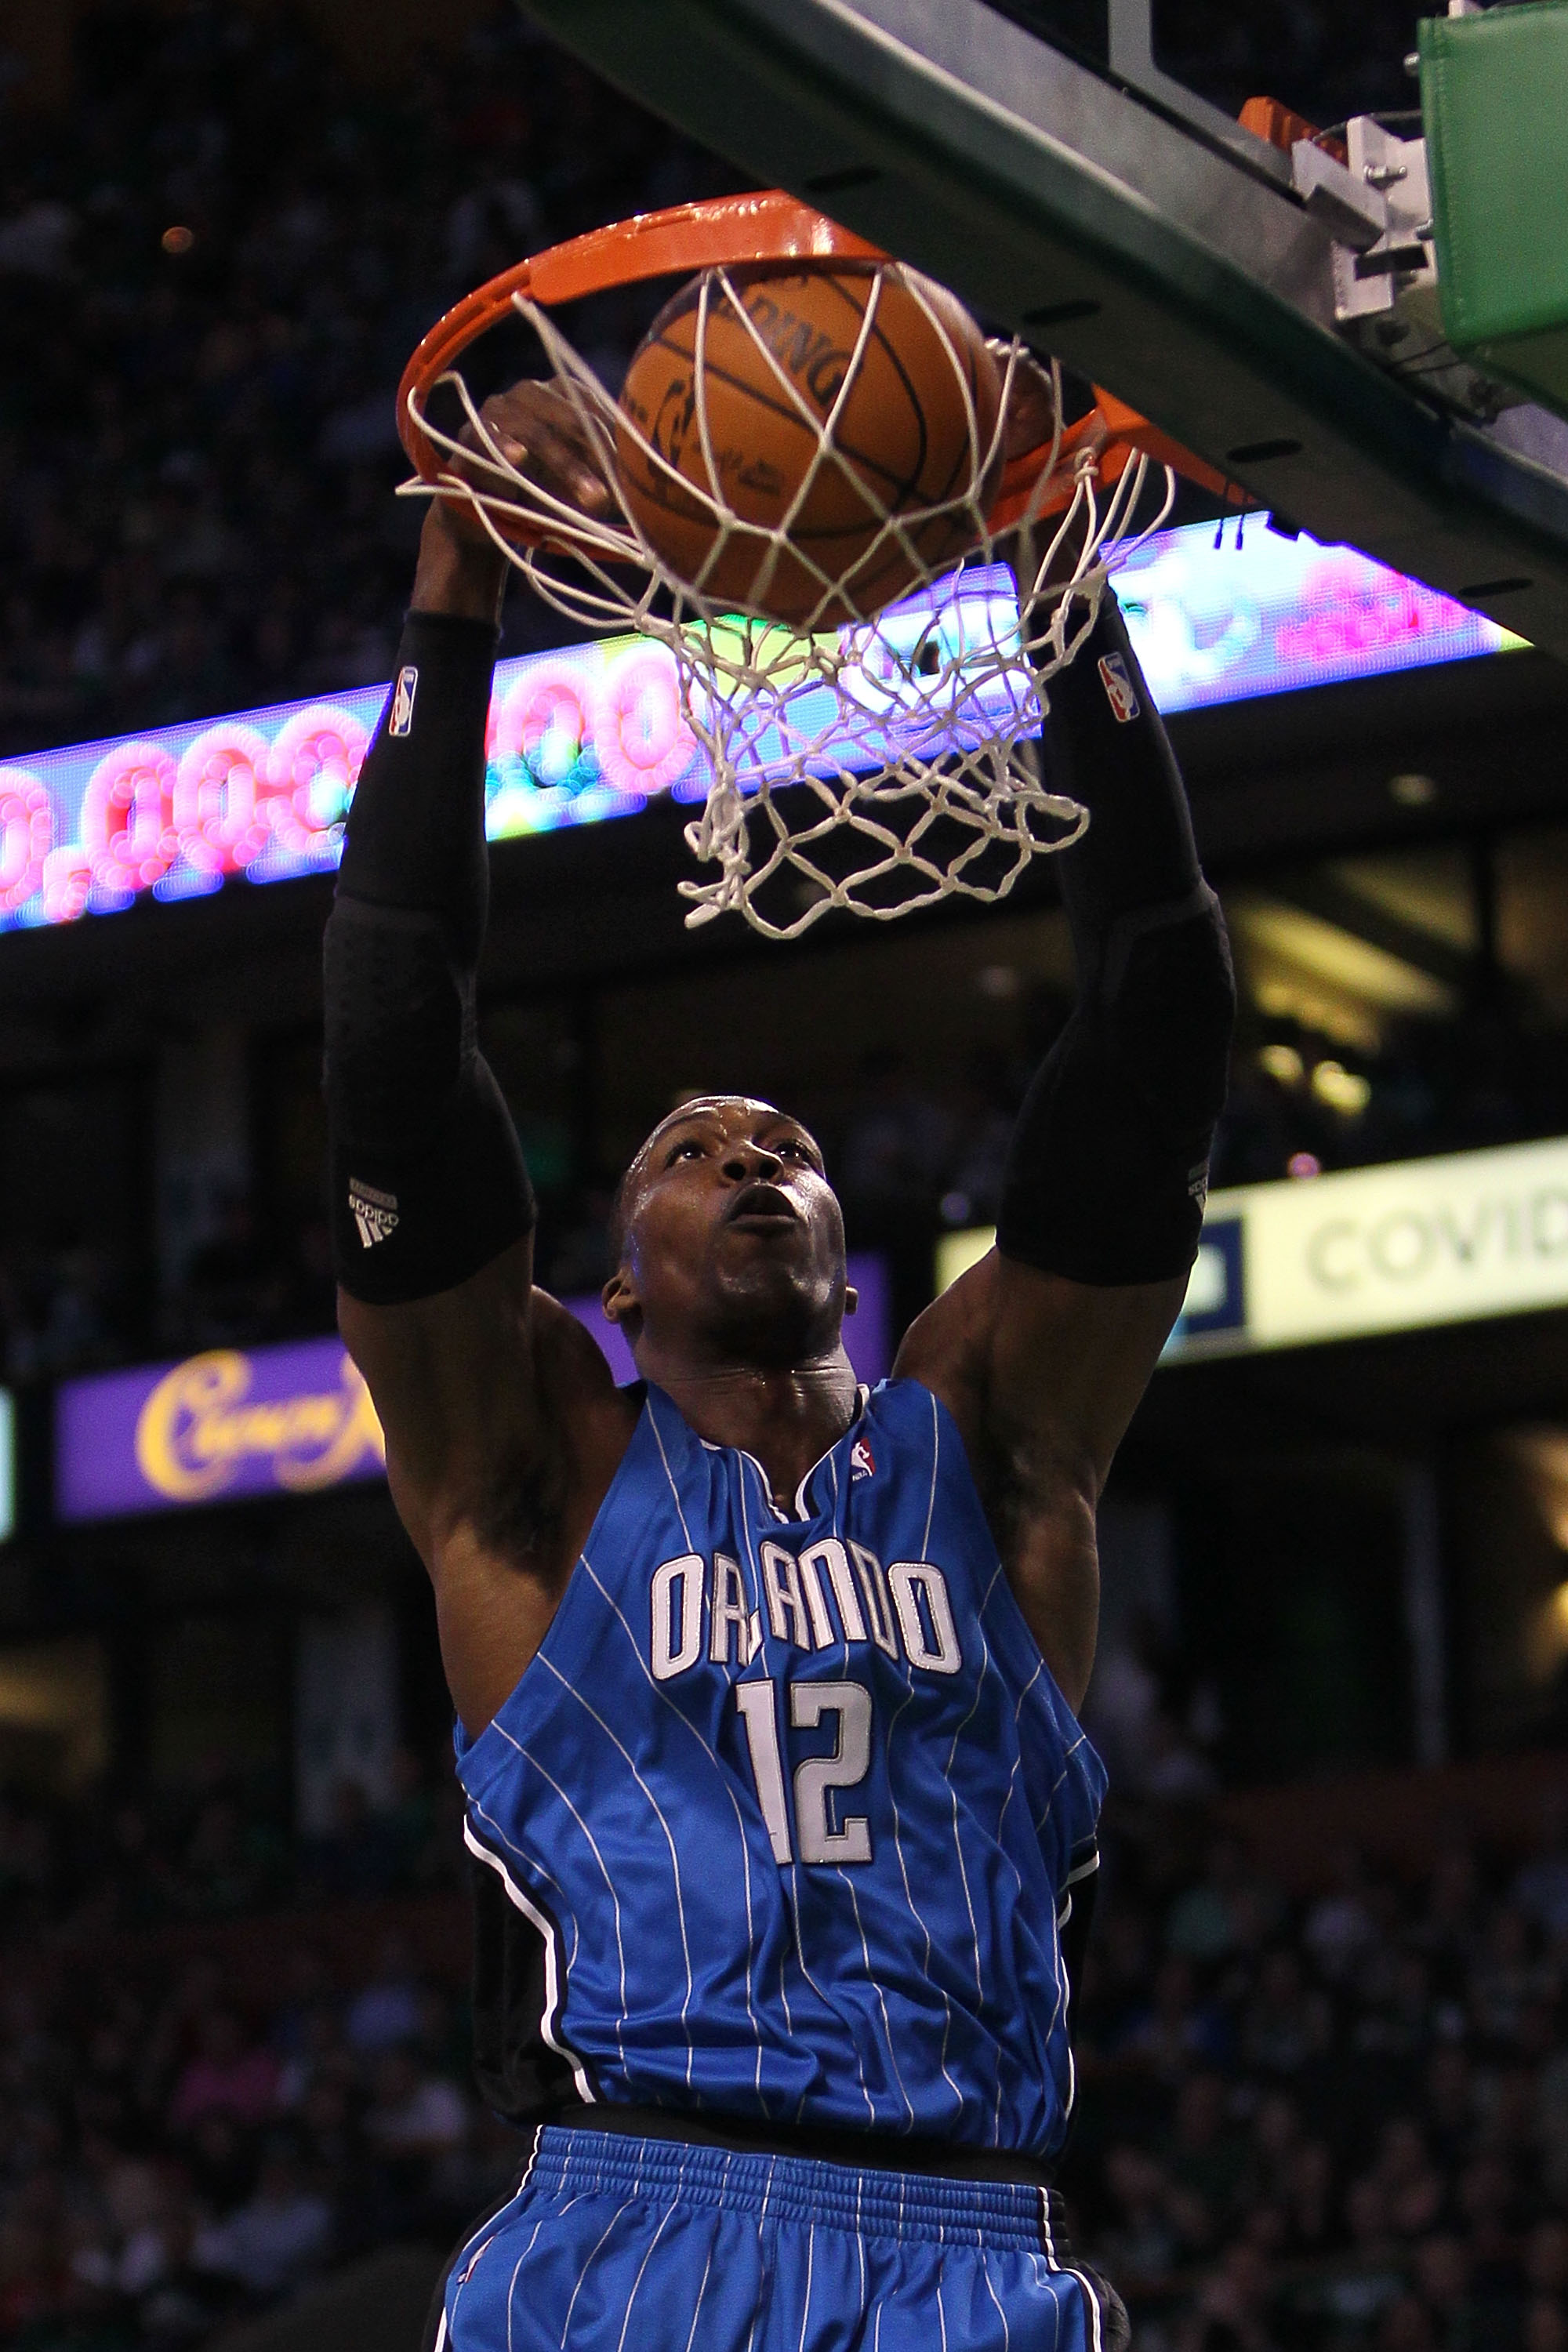 BOSTON - MAY 28:  Dwight Howard #12 of the Orlando Magic  dunks against the Boston Celtics in Game Six of the Eastern Conference Finals during the 2010 NBA Playoffs at TD Garden on May 28, 2010 in Boston, Massachusetts.  NOTE TO USER: User expressly ackno